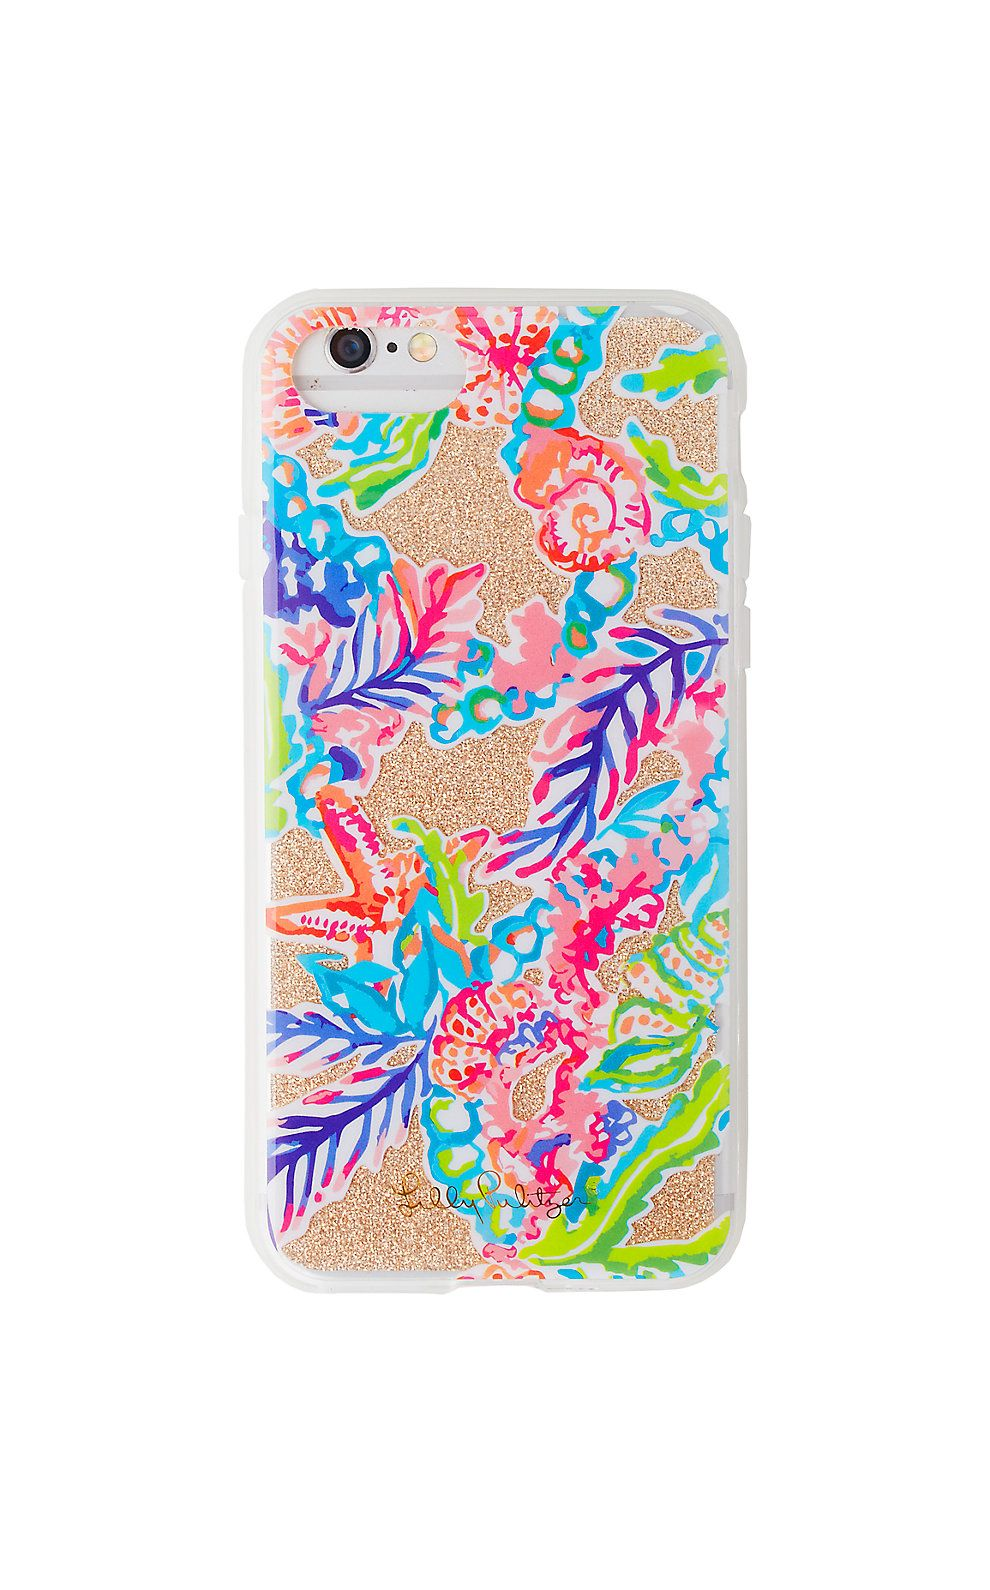 quality design e7efd 9216f iPhone 7/8 Glitter Cover   Products   Iphone 6 covers, Iphone 7 ...